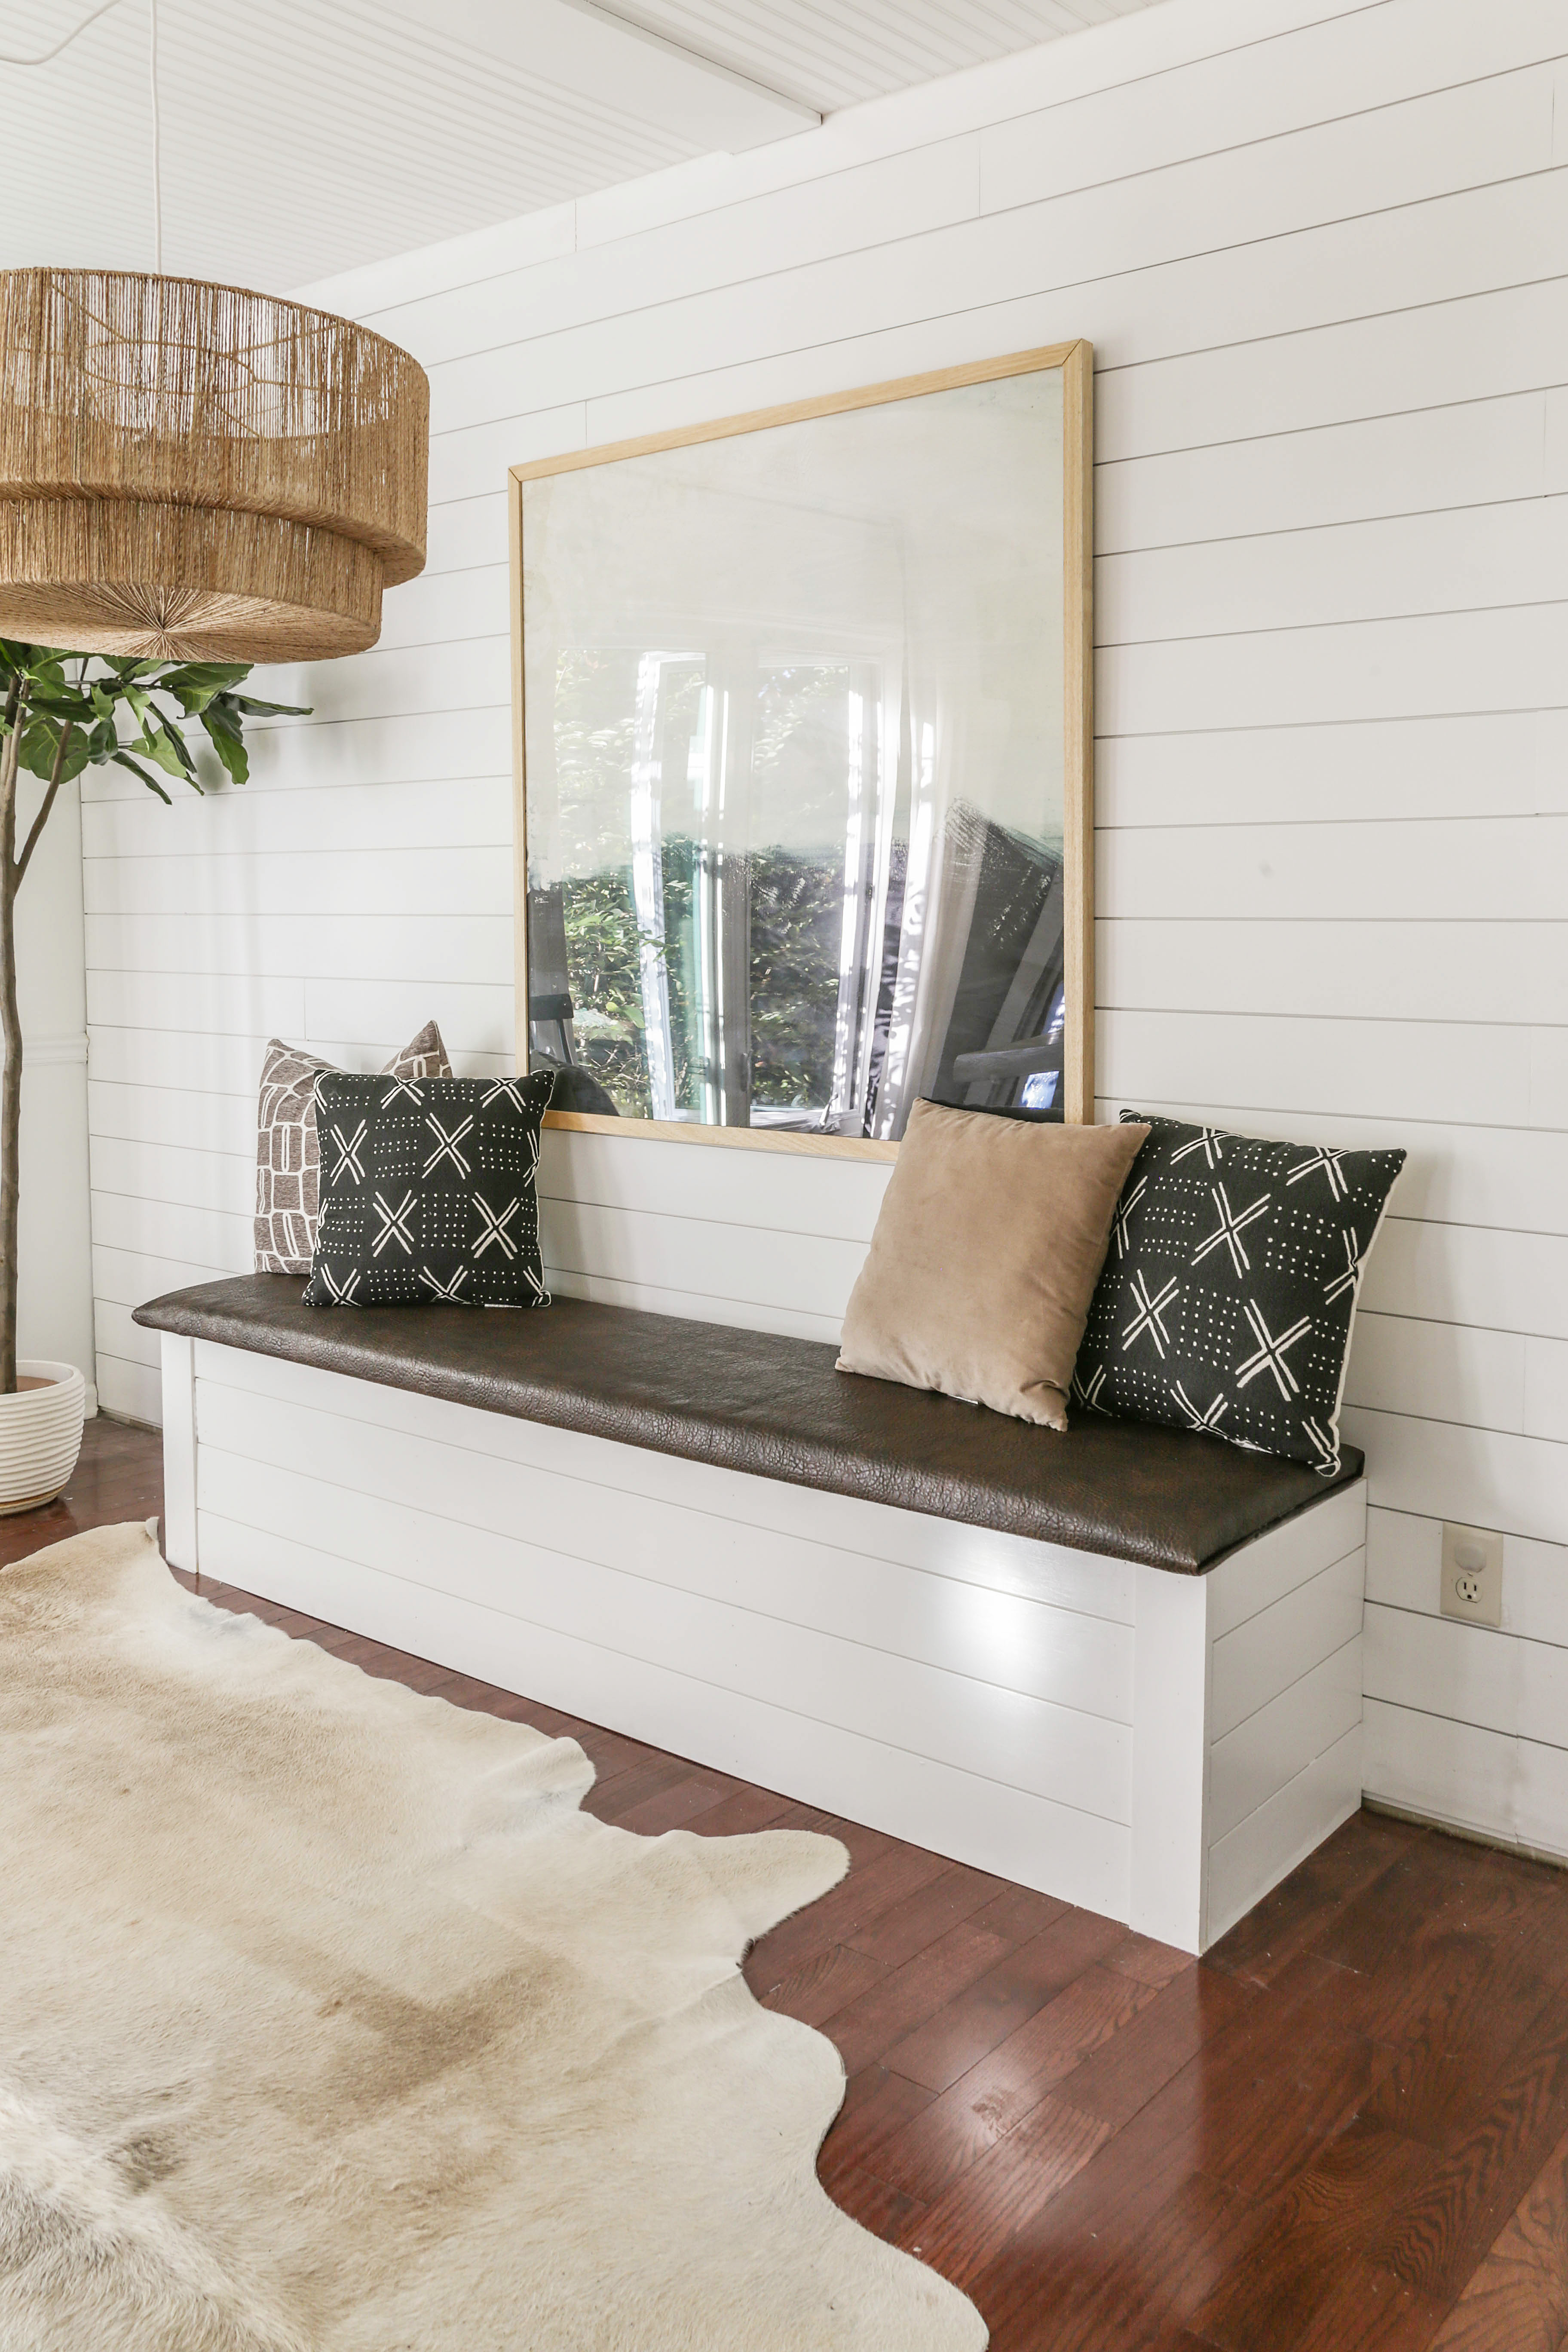 Diy Built In Dining Bench With Storage Breakfast Nook Banquette Tutorial